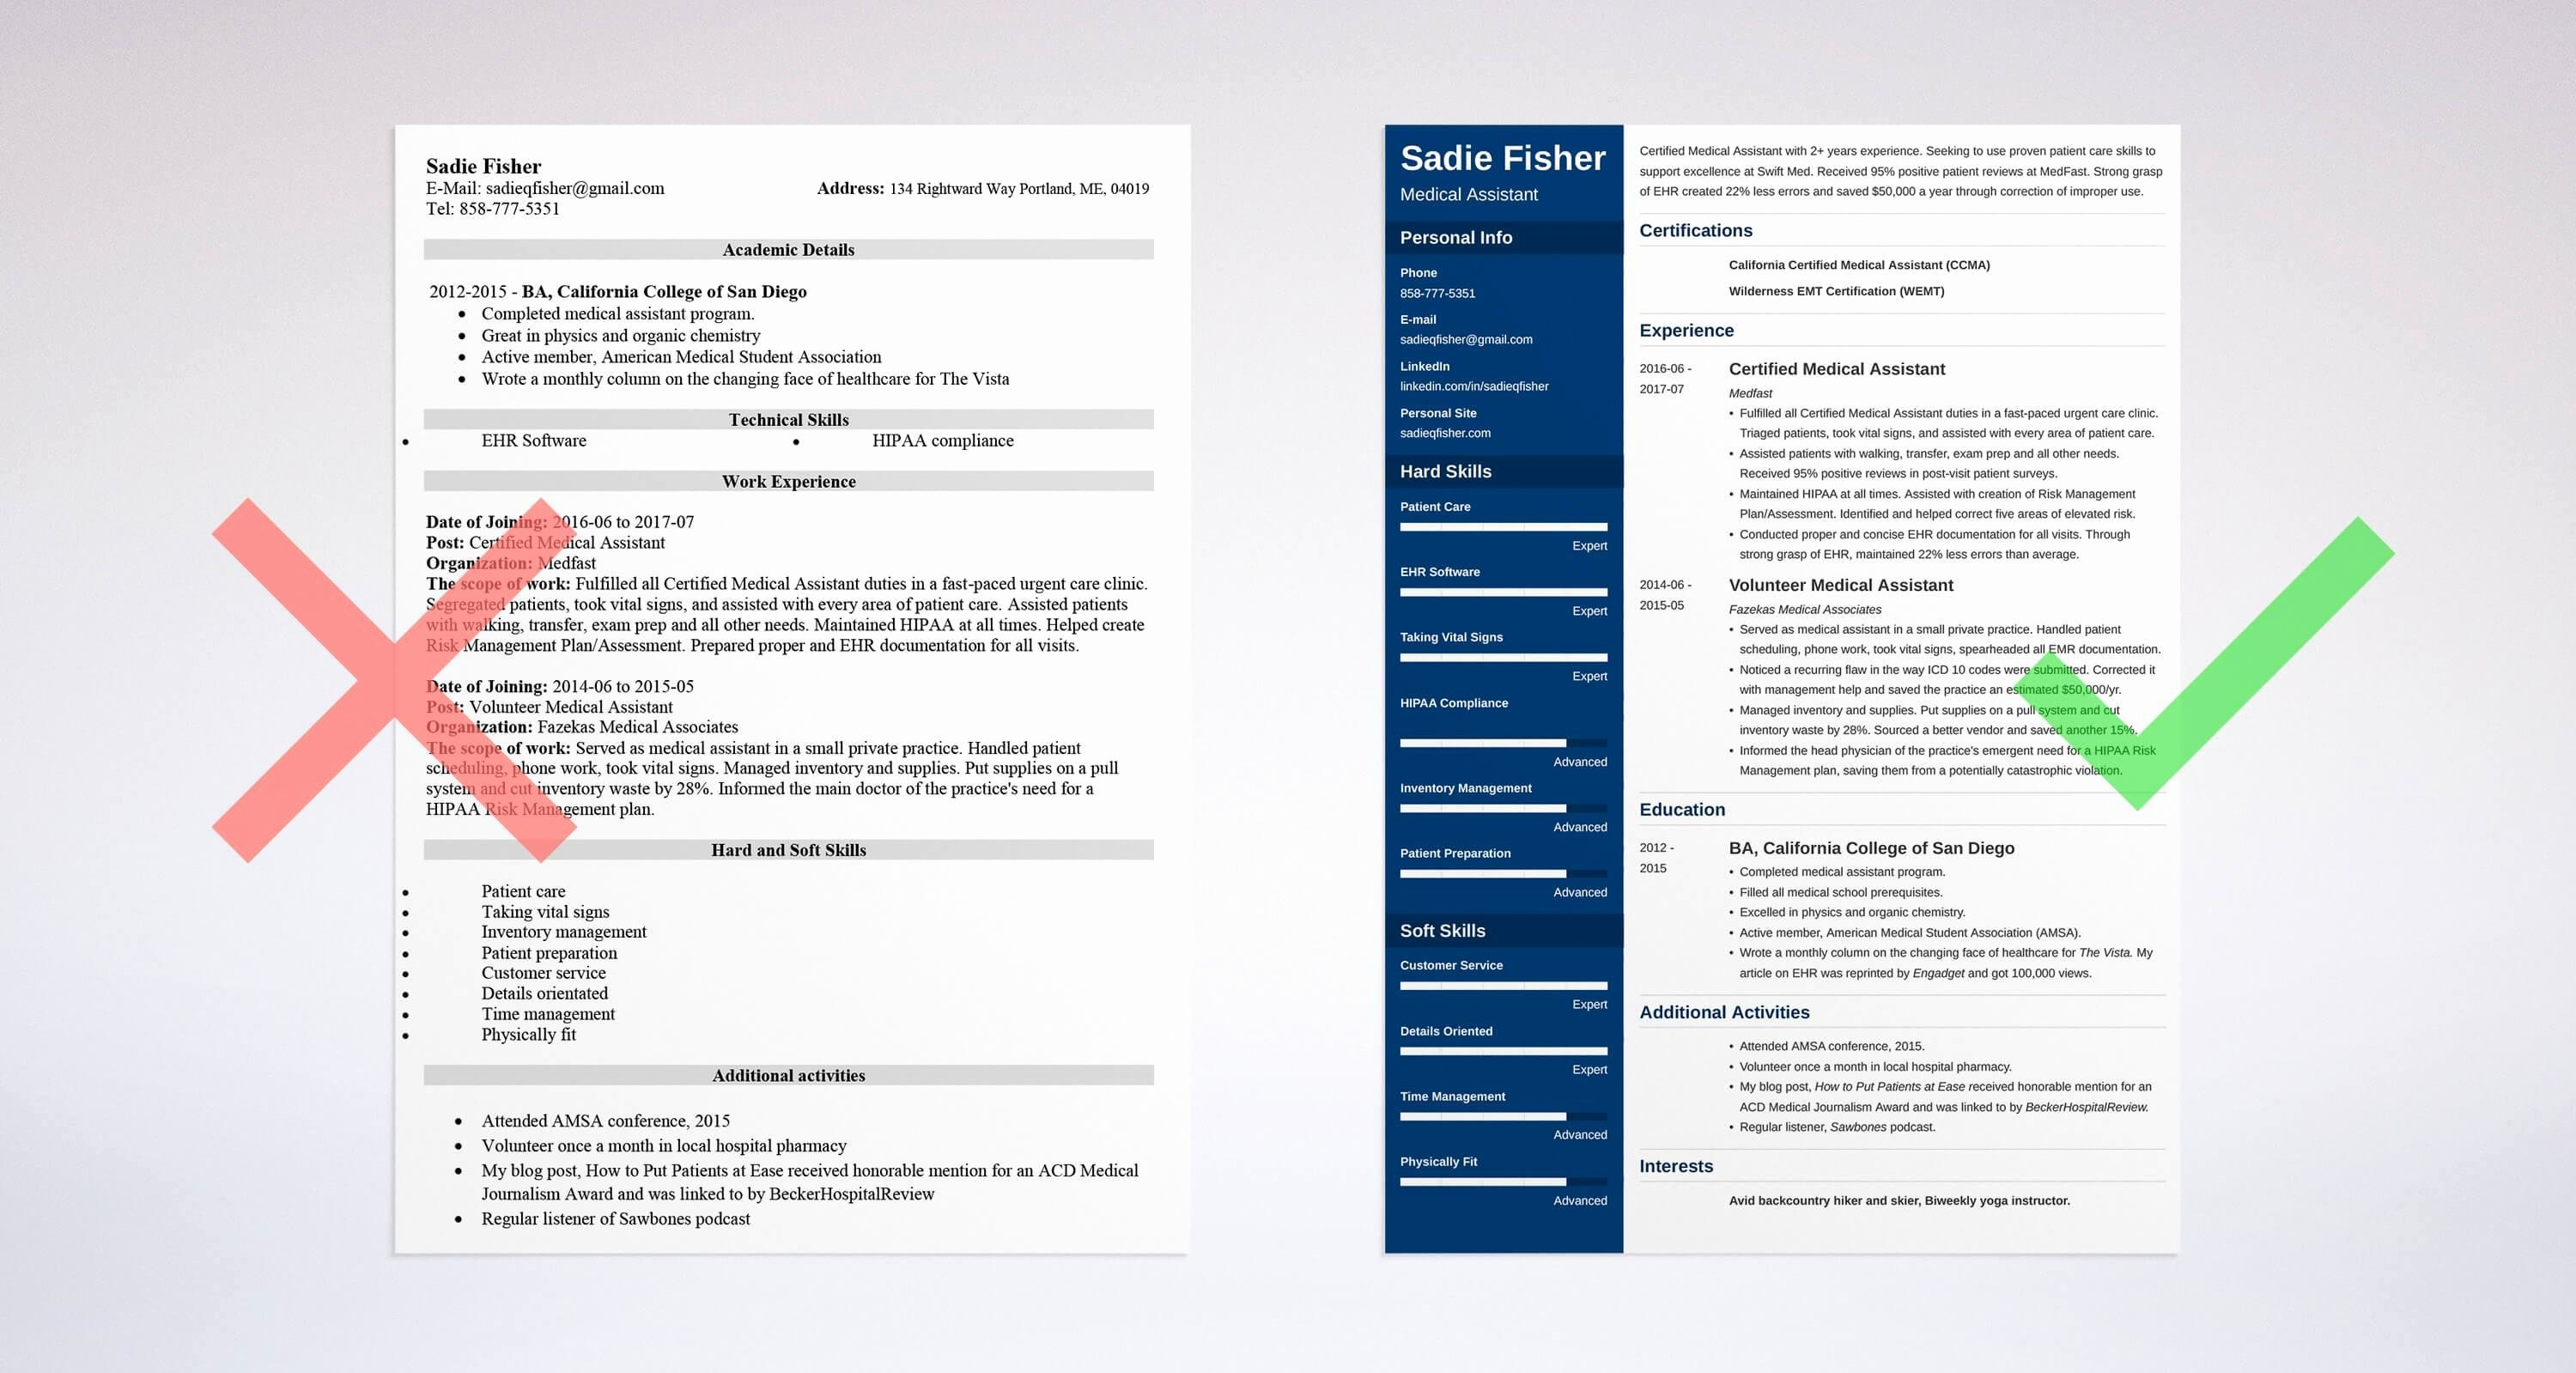 Free Medical assistant Resume Templates Lovely Medical assistant Resume Sample & Plete Guide [20